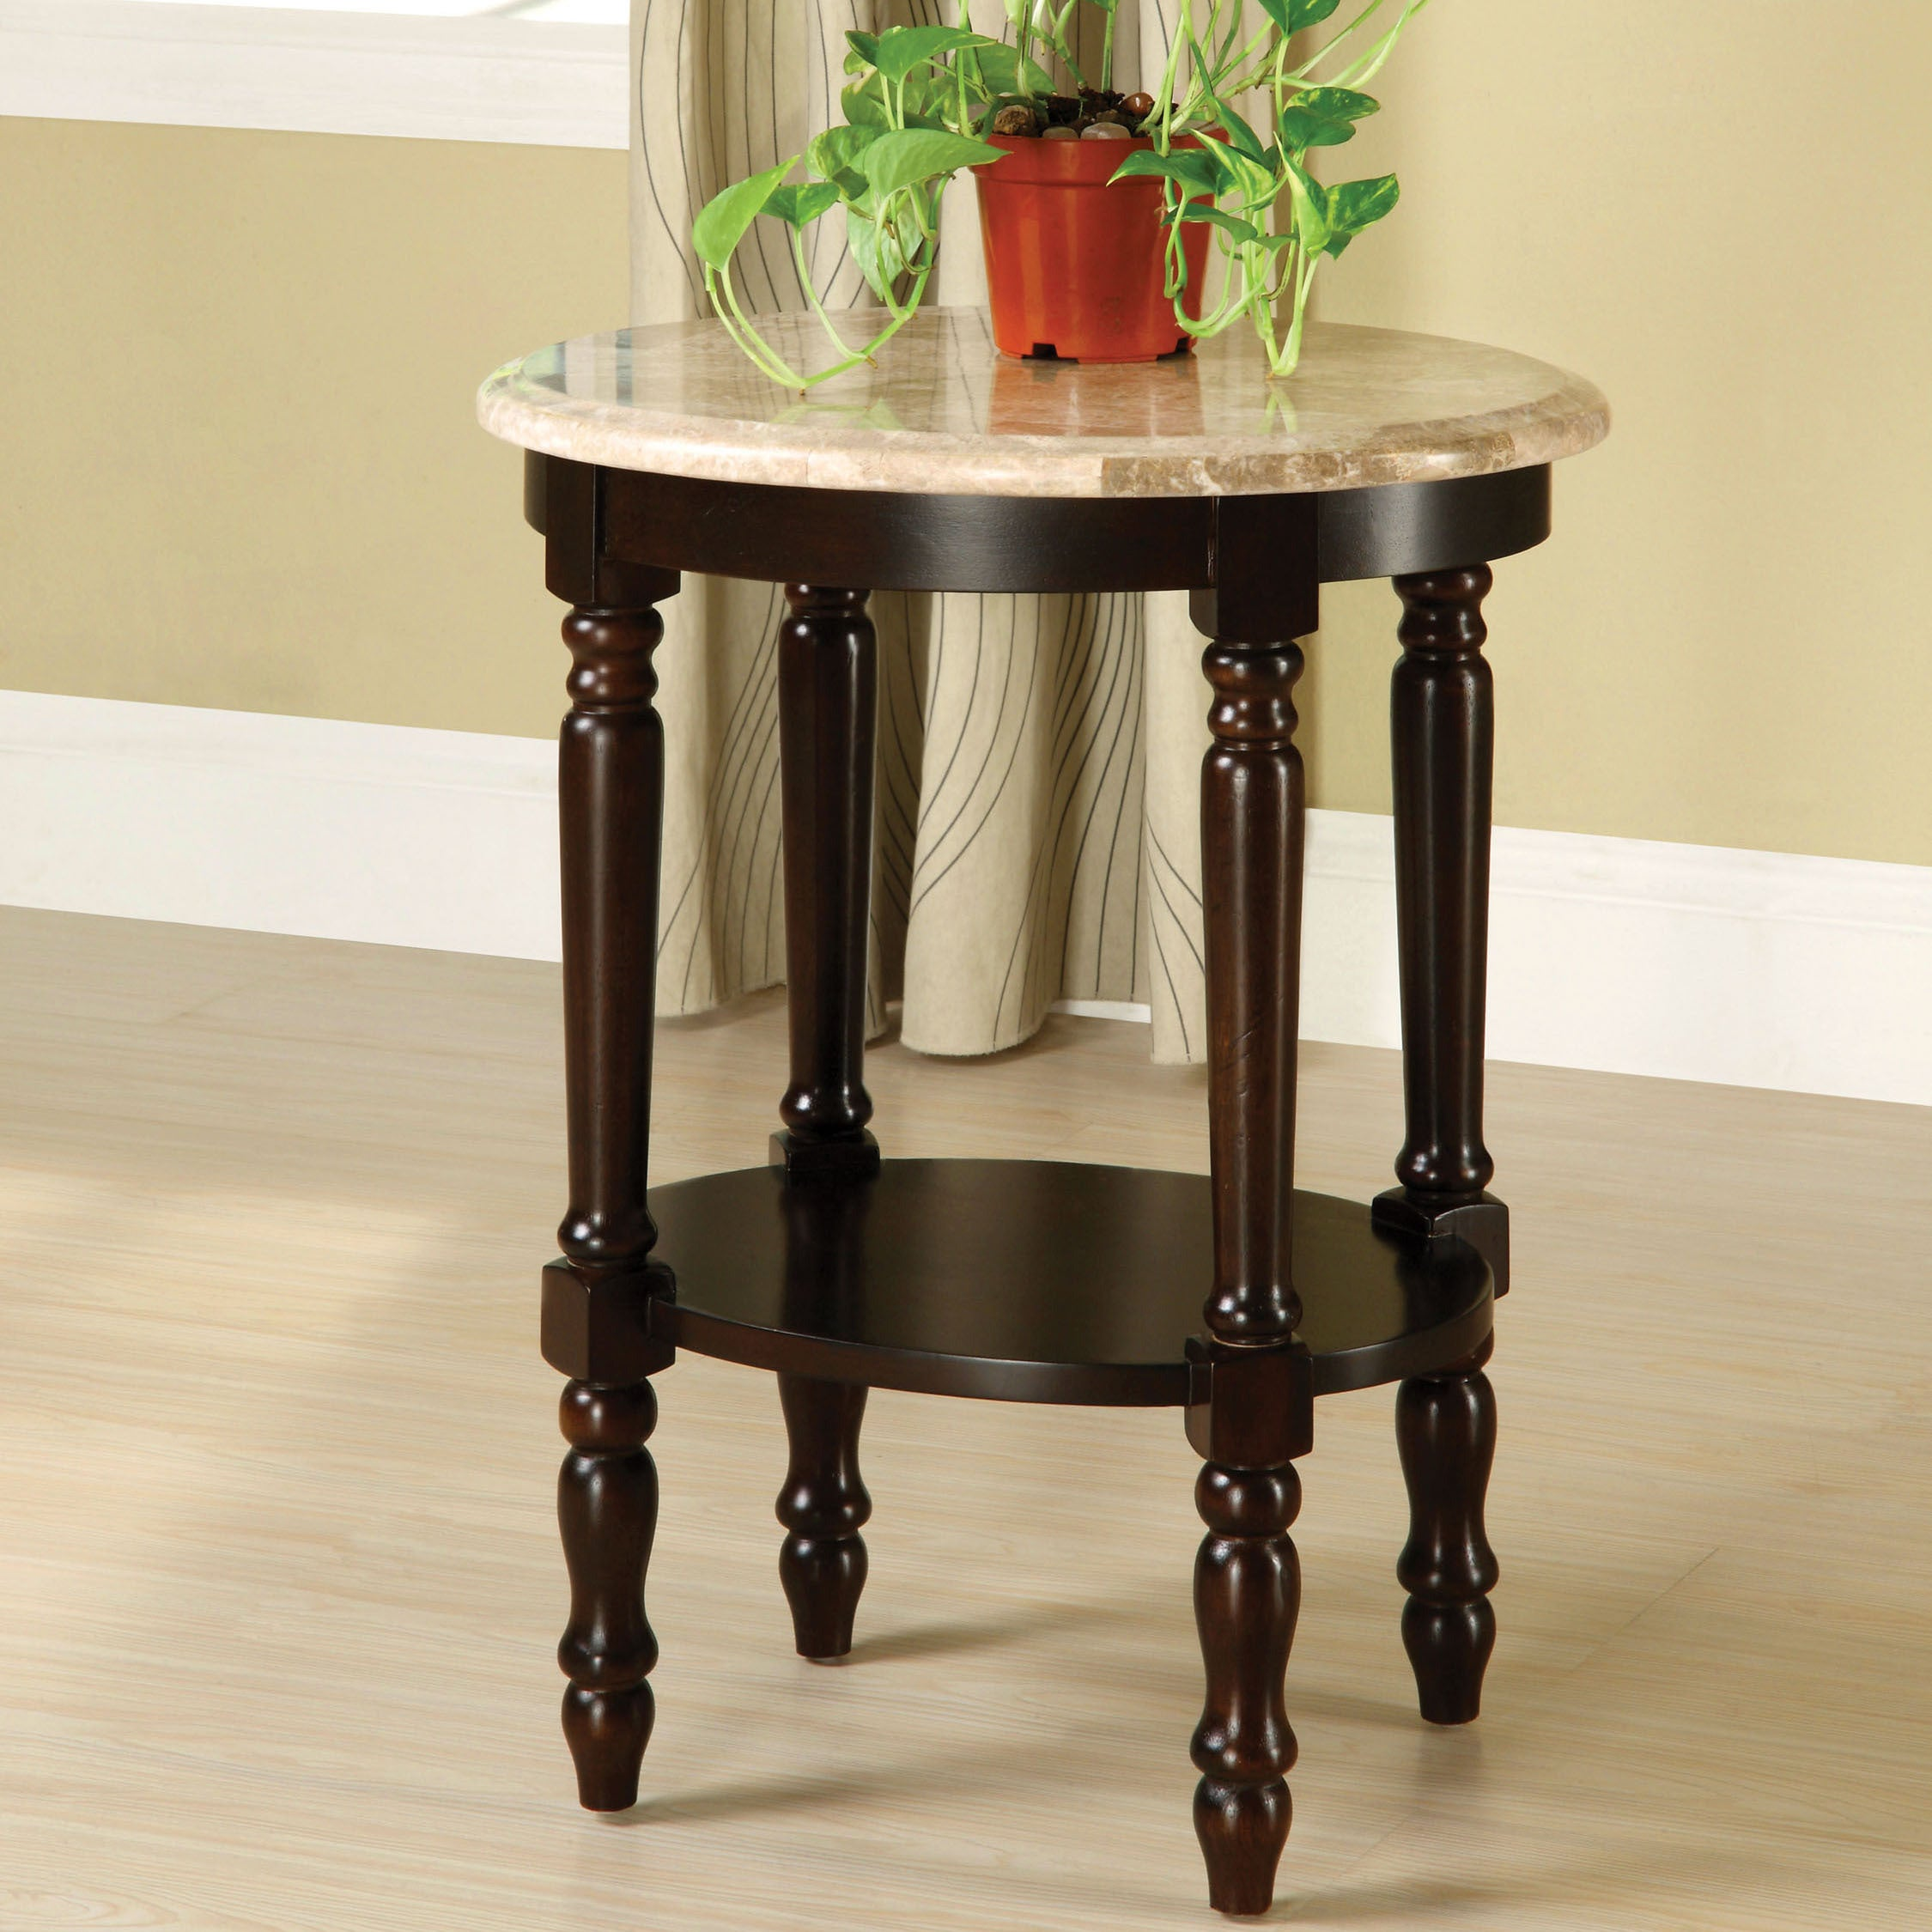 Shop gracewood hollow thunderhorse classic marble oval top side table free shipping today overstock com 20461289